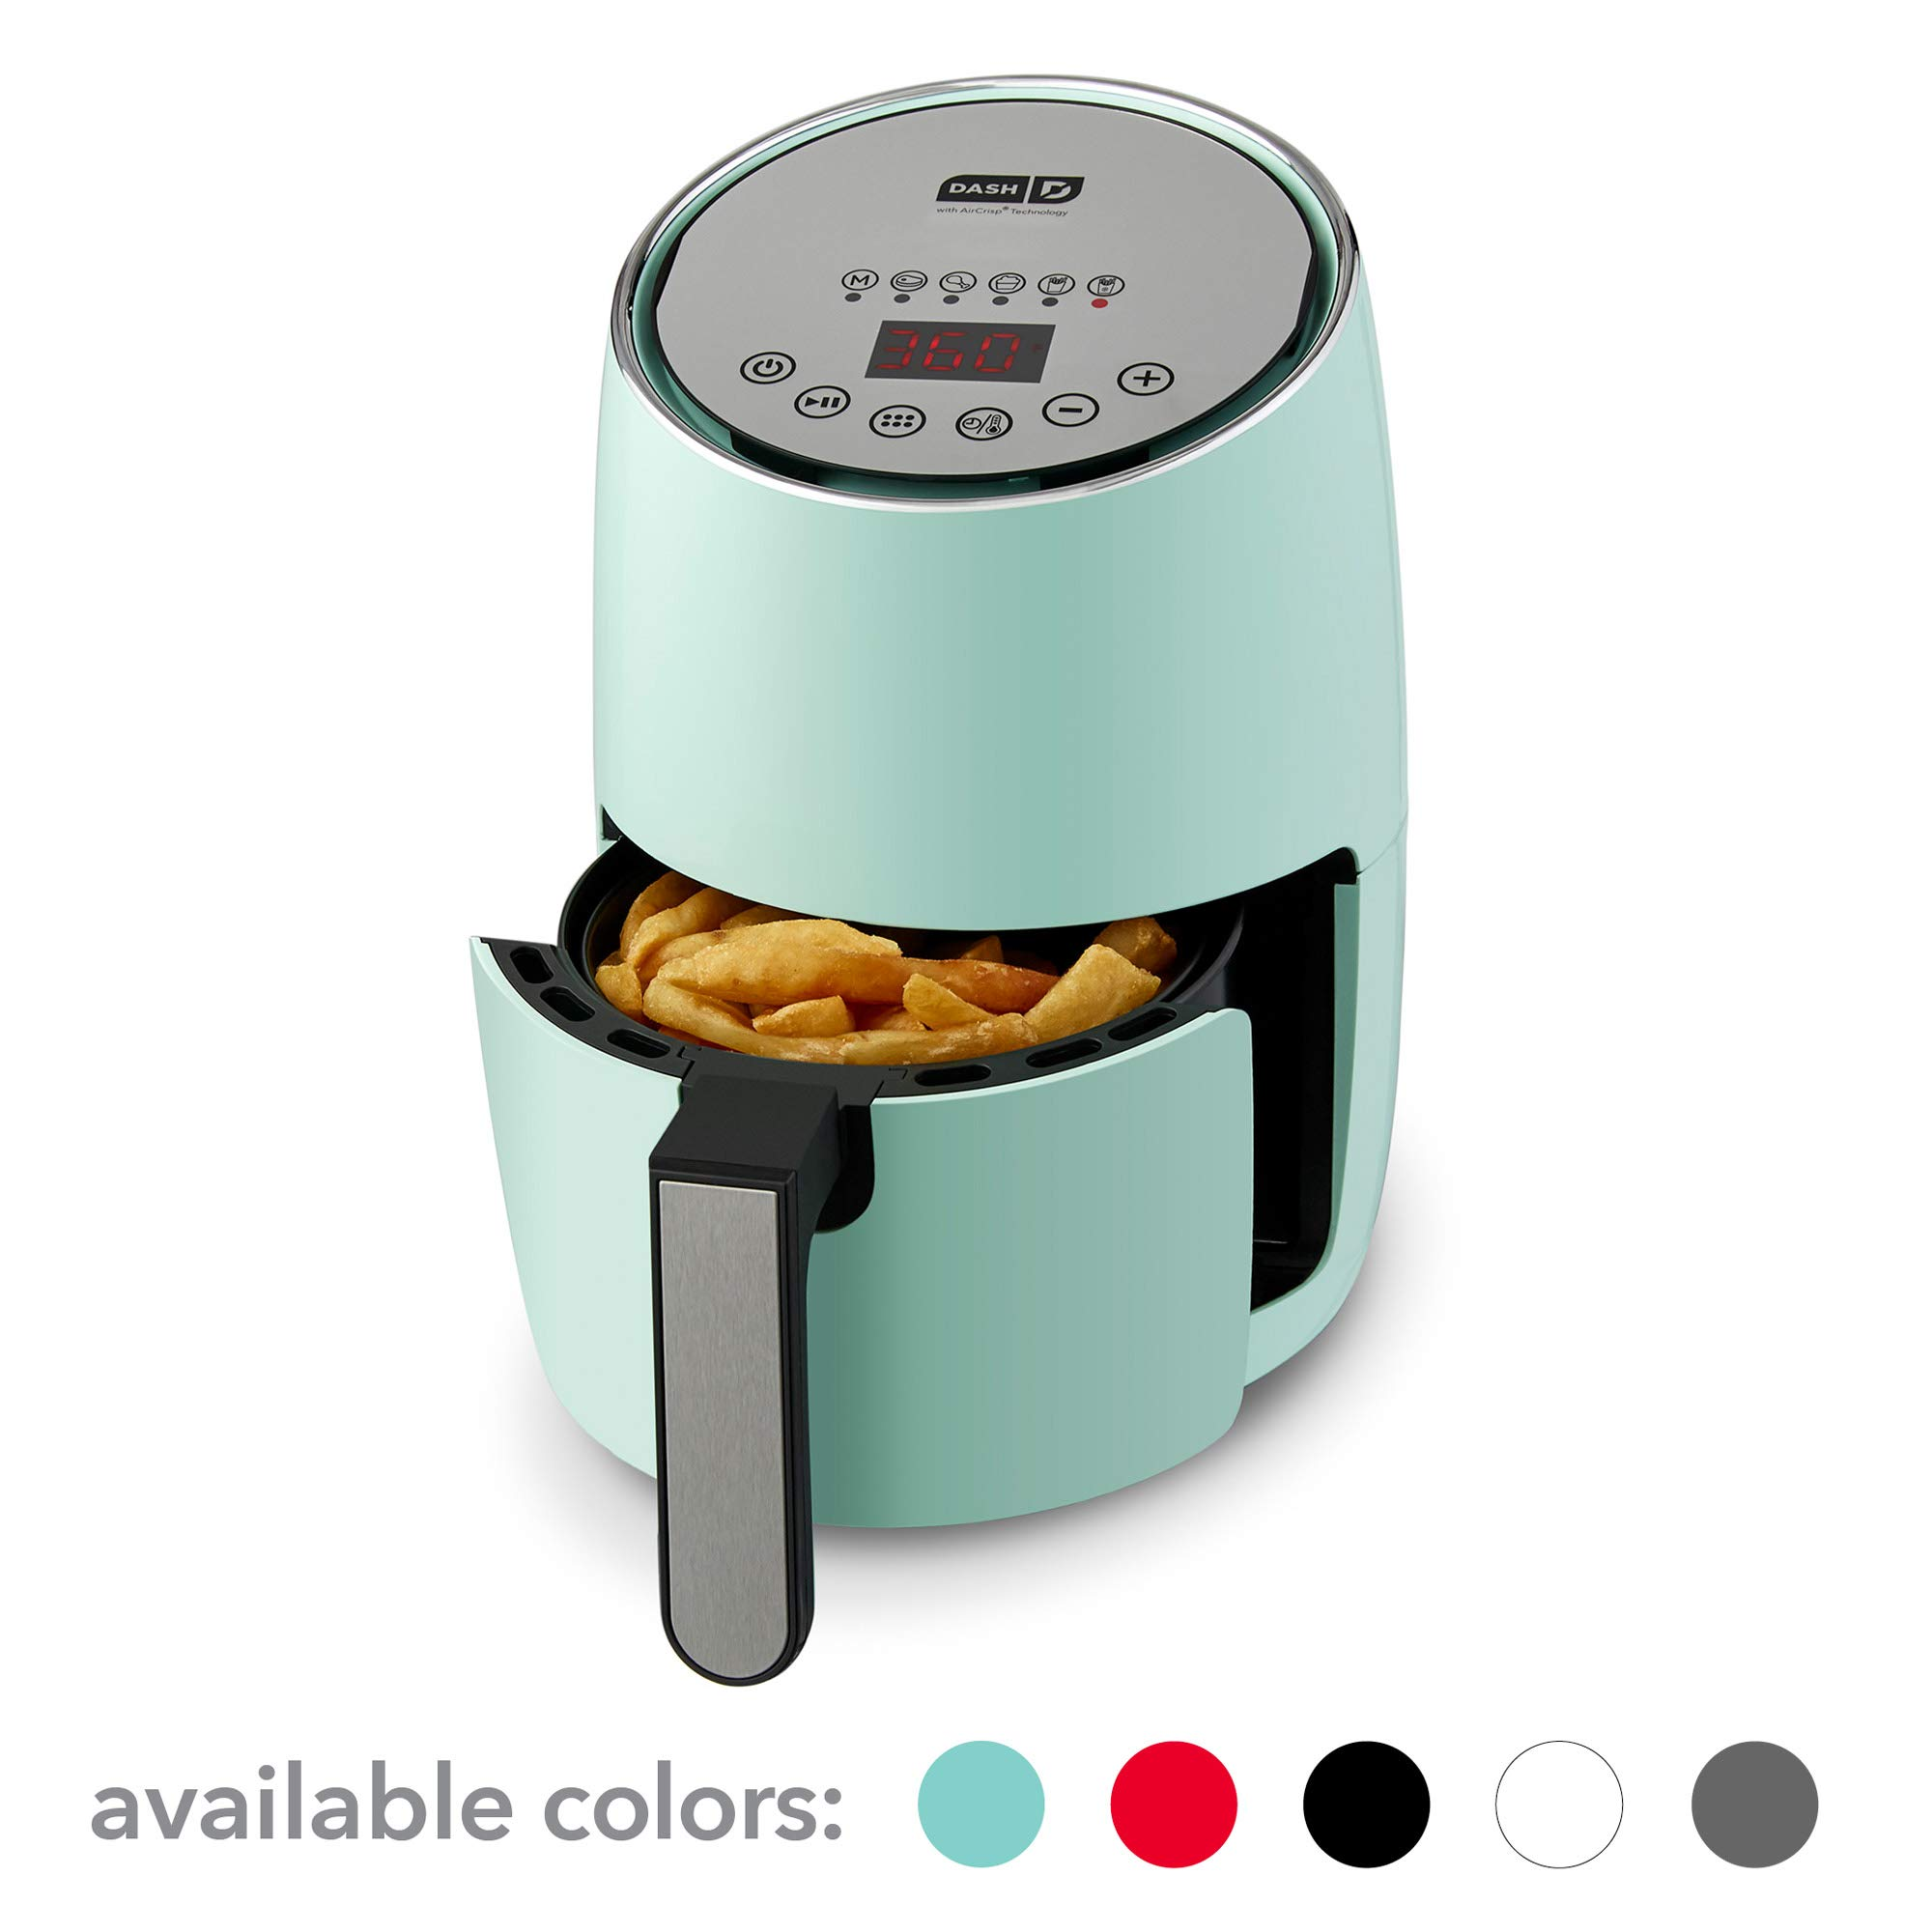 DASH Compact Electric Air Fryer + Oven Cooker with Digital Display, Temperature Control, Non Stick Fry Basket, Recipe Guide + Auto Shut Off Feature, 1.6 L, up to 2 QT, Aqua by DASH (Image #1)